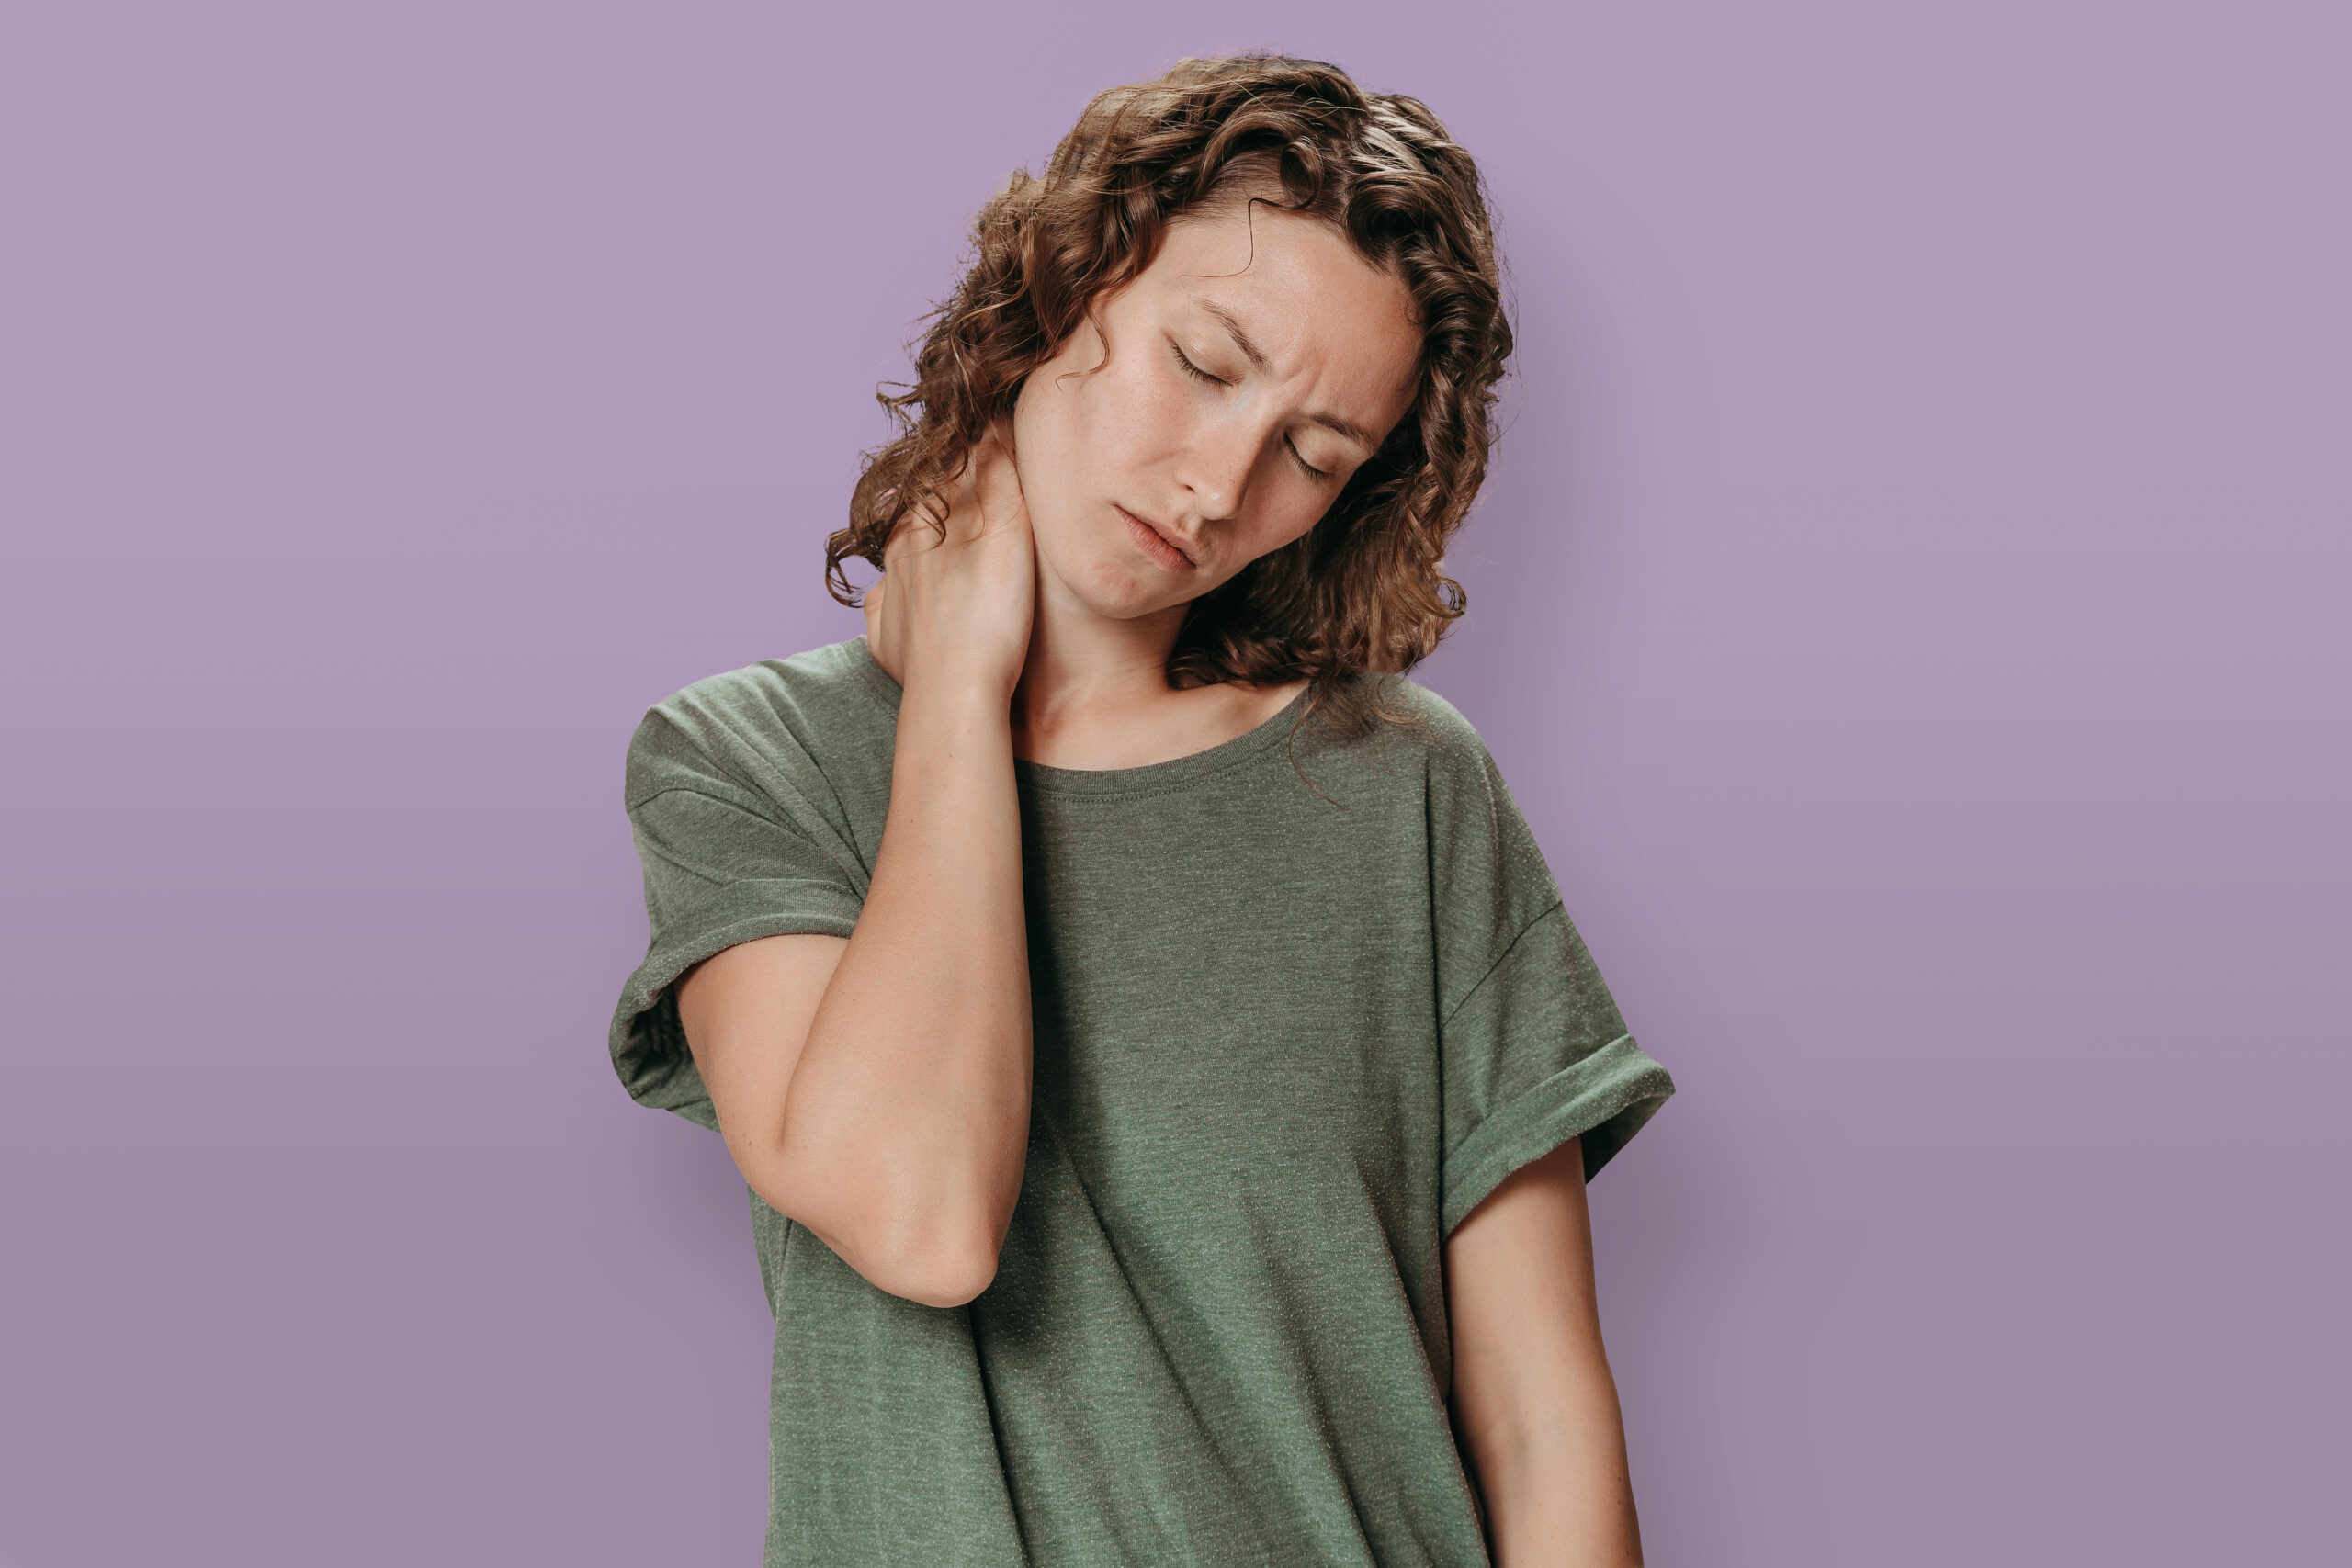 Tired young attractive woman suffering from neck pain rubbing massaging tensed muscles to decrease joint pain, isolated on violet background. Symptom of cervical chondrosis. Pain concept. Copy space